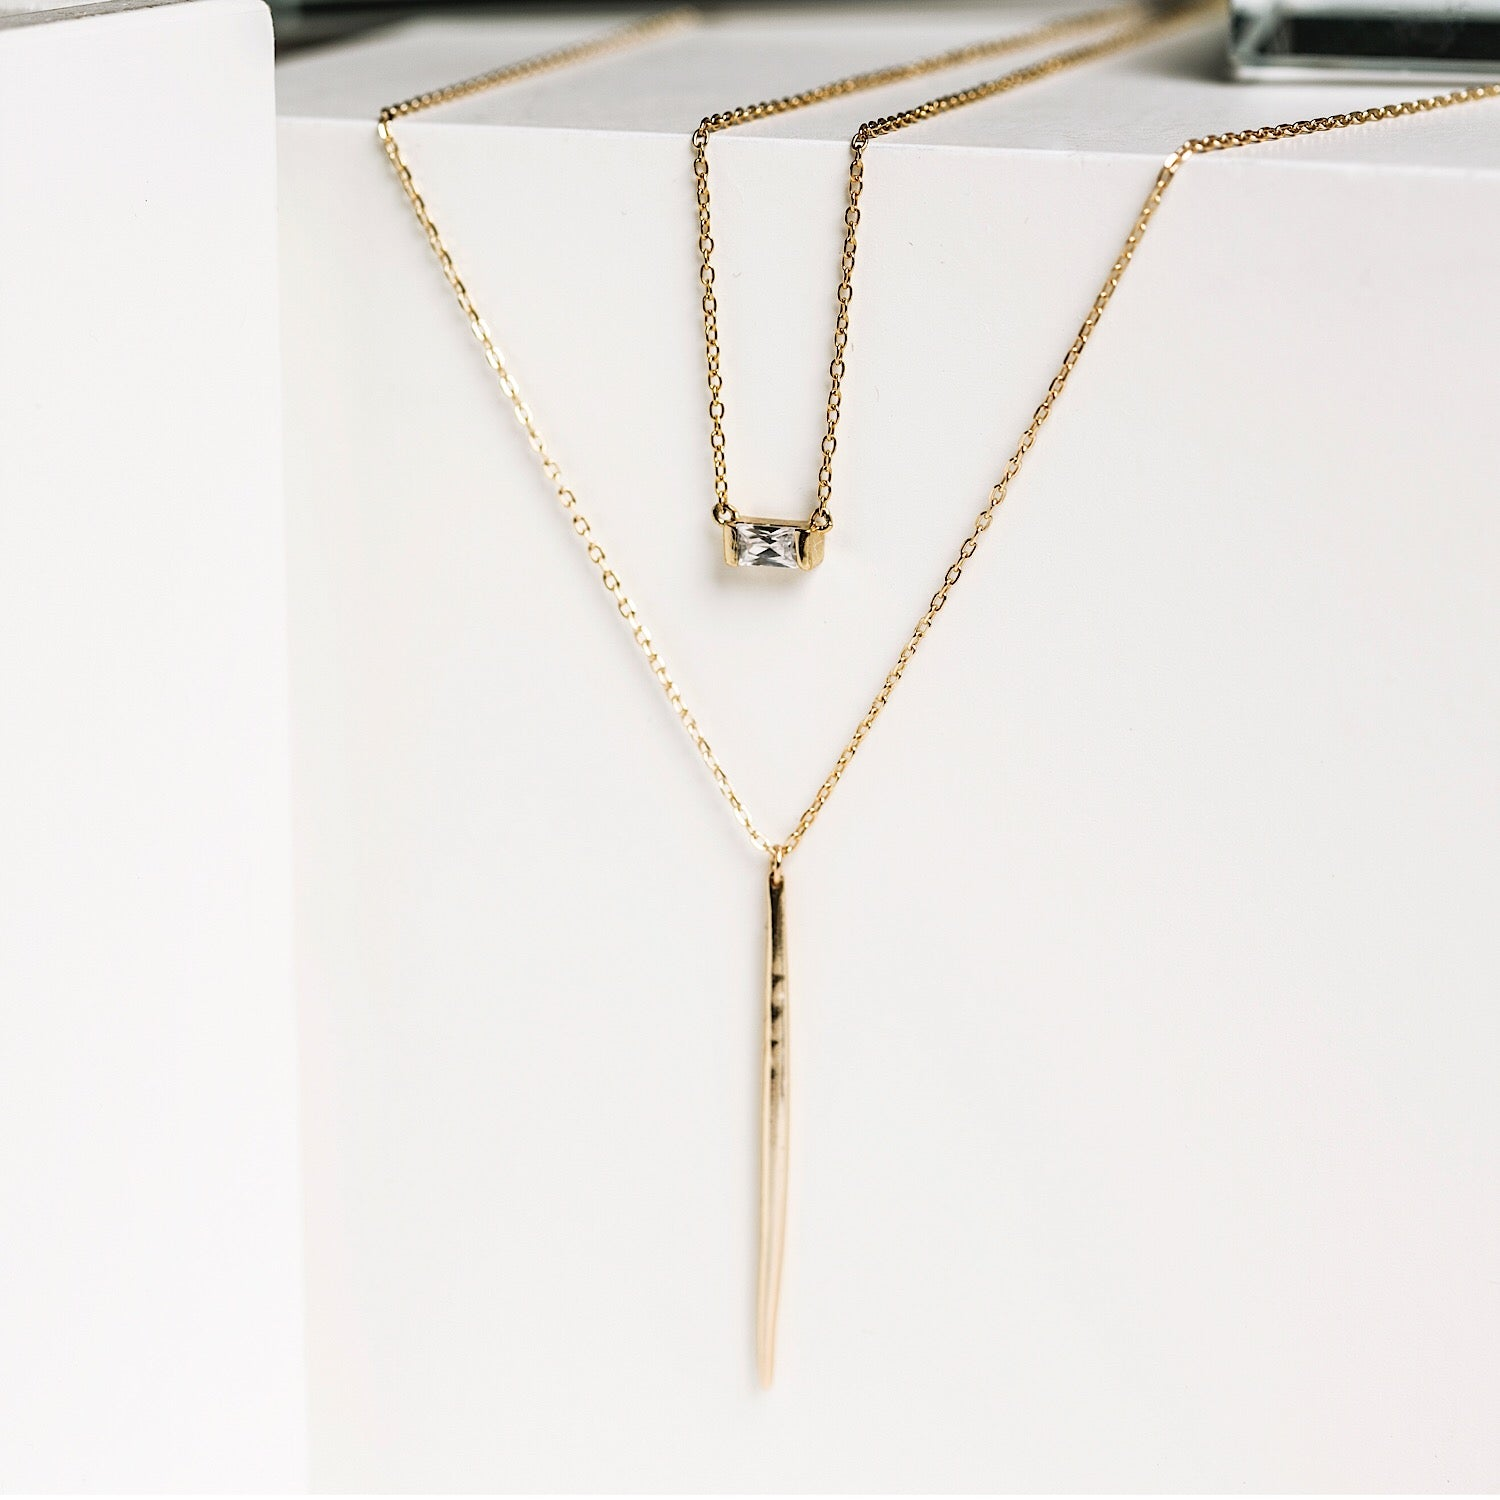 Colette Spear Necklace, Necklaces - AMY O. Jewelry